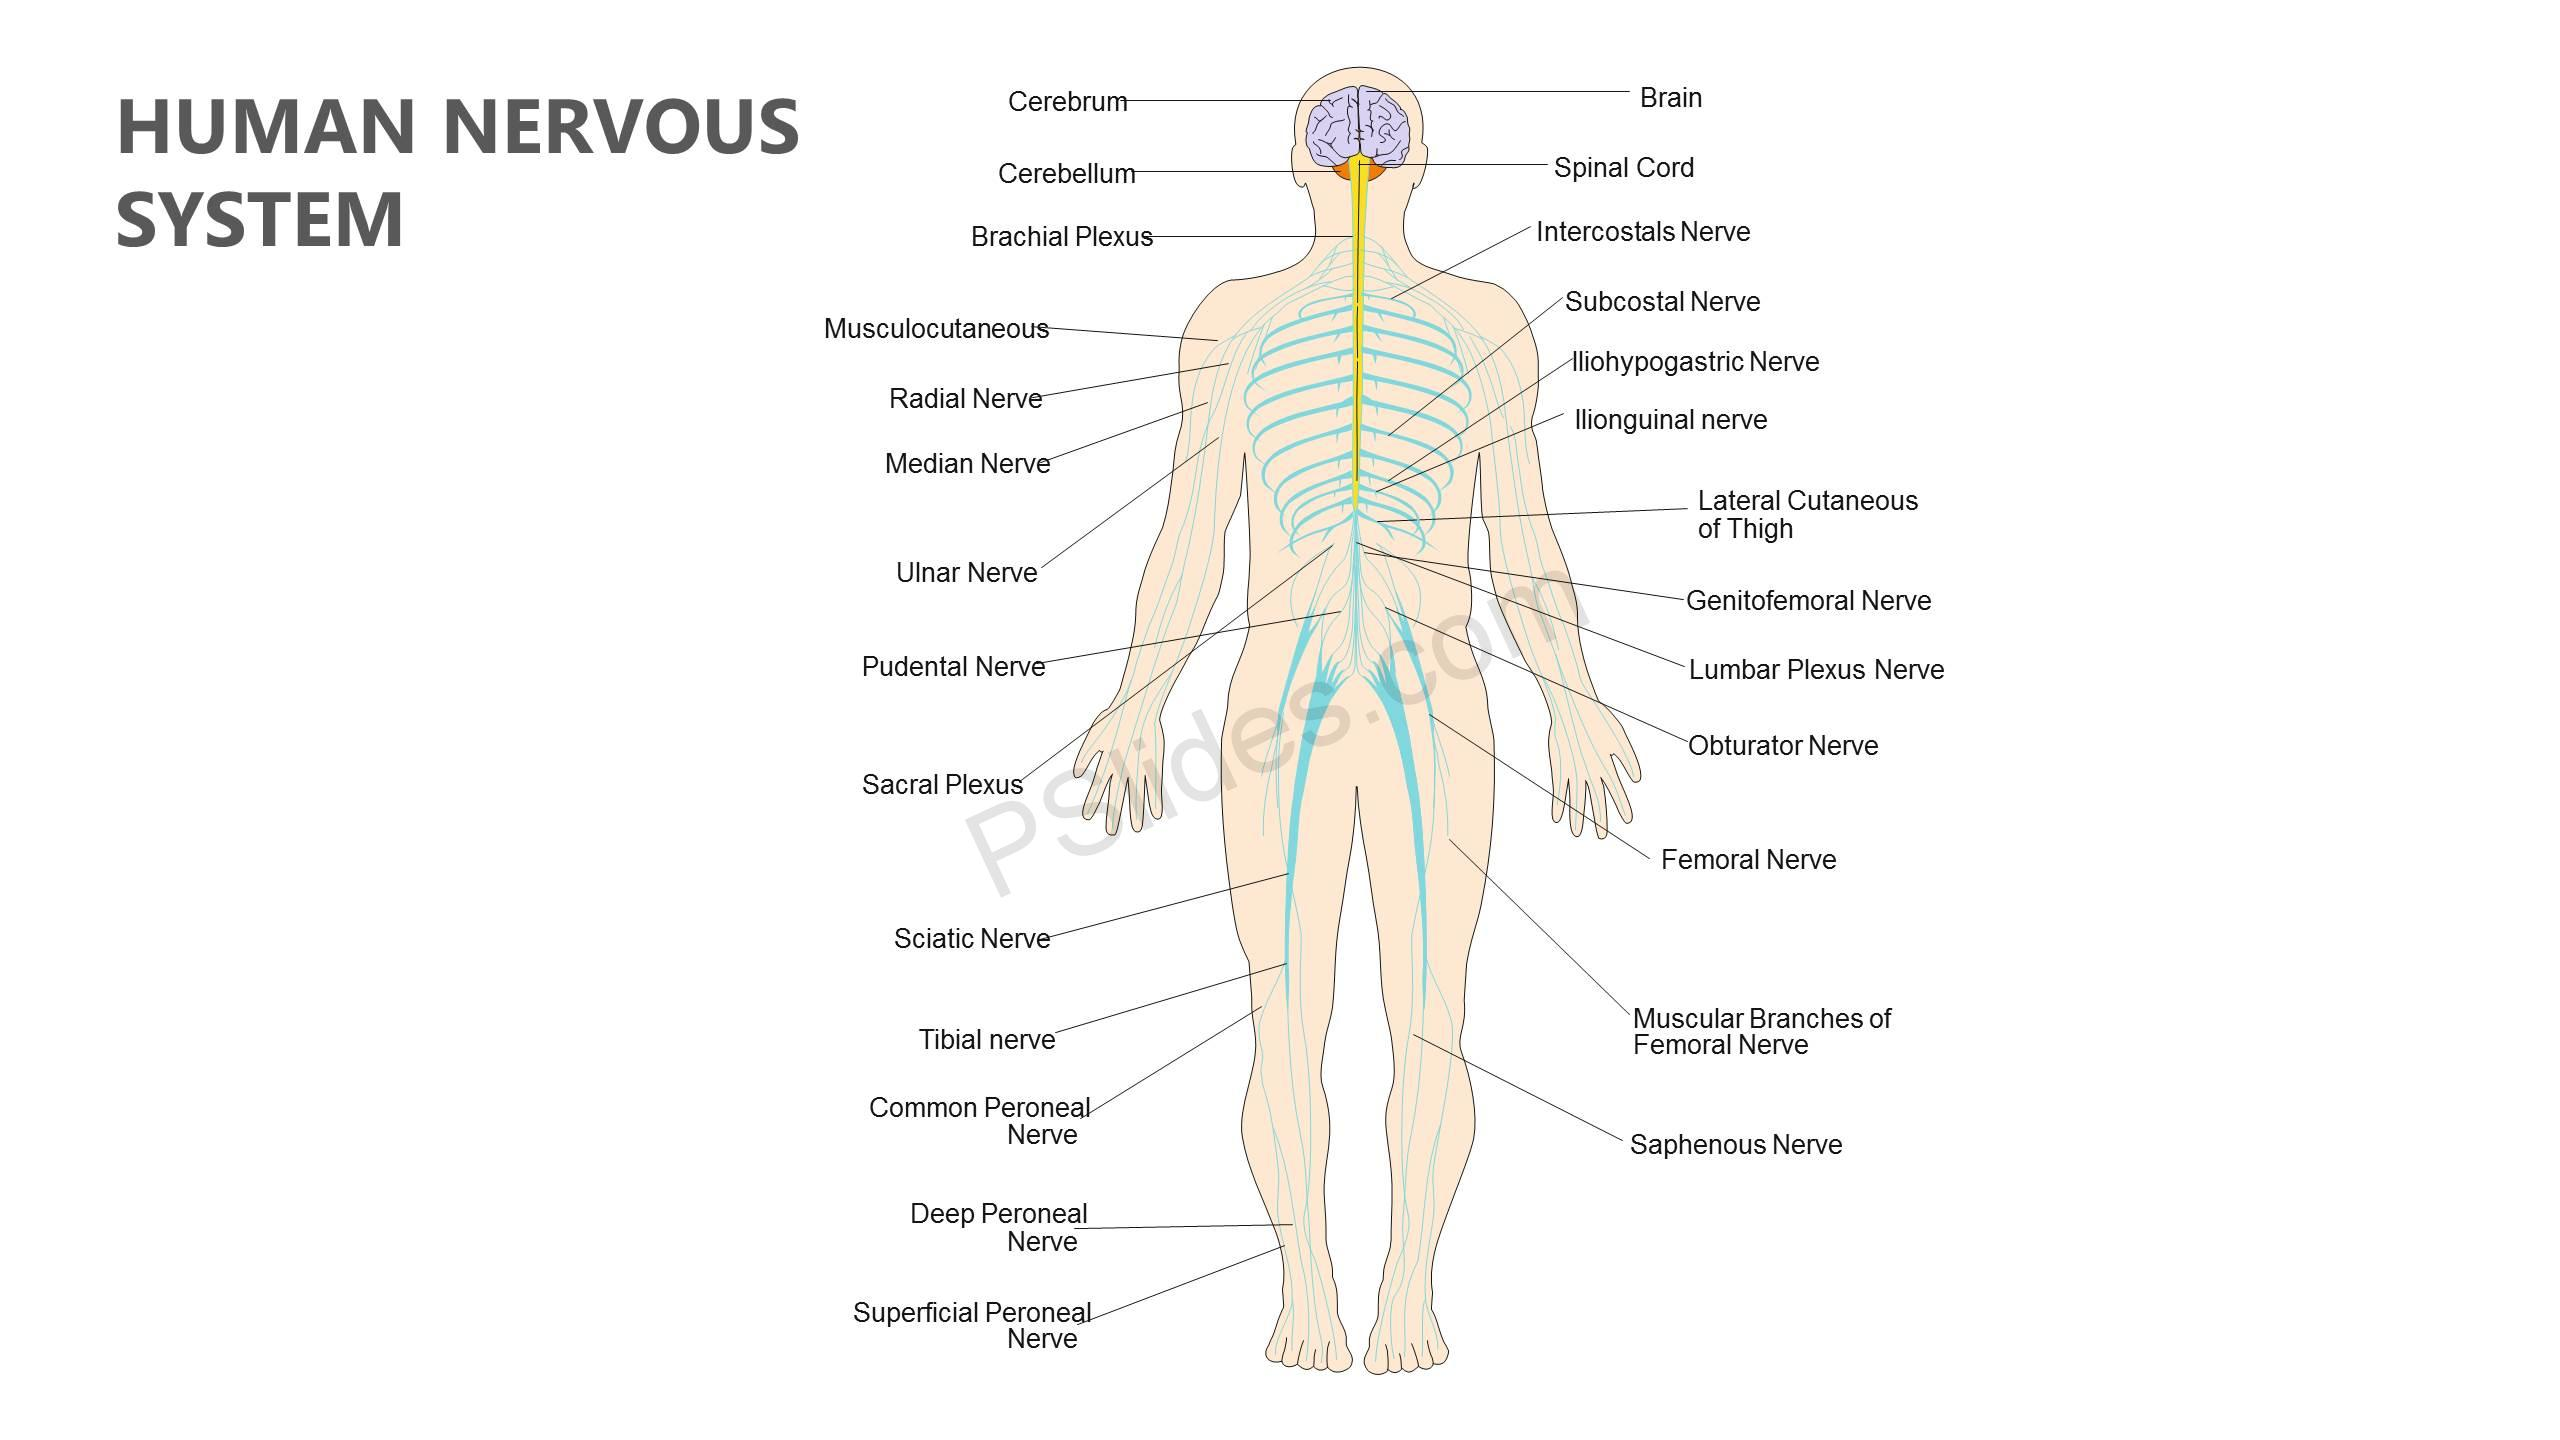 Human nervous system powerpoint diagram pslides human nervous system powerpoint diagram slide1 toneelgroepblik Image collections